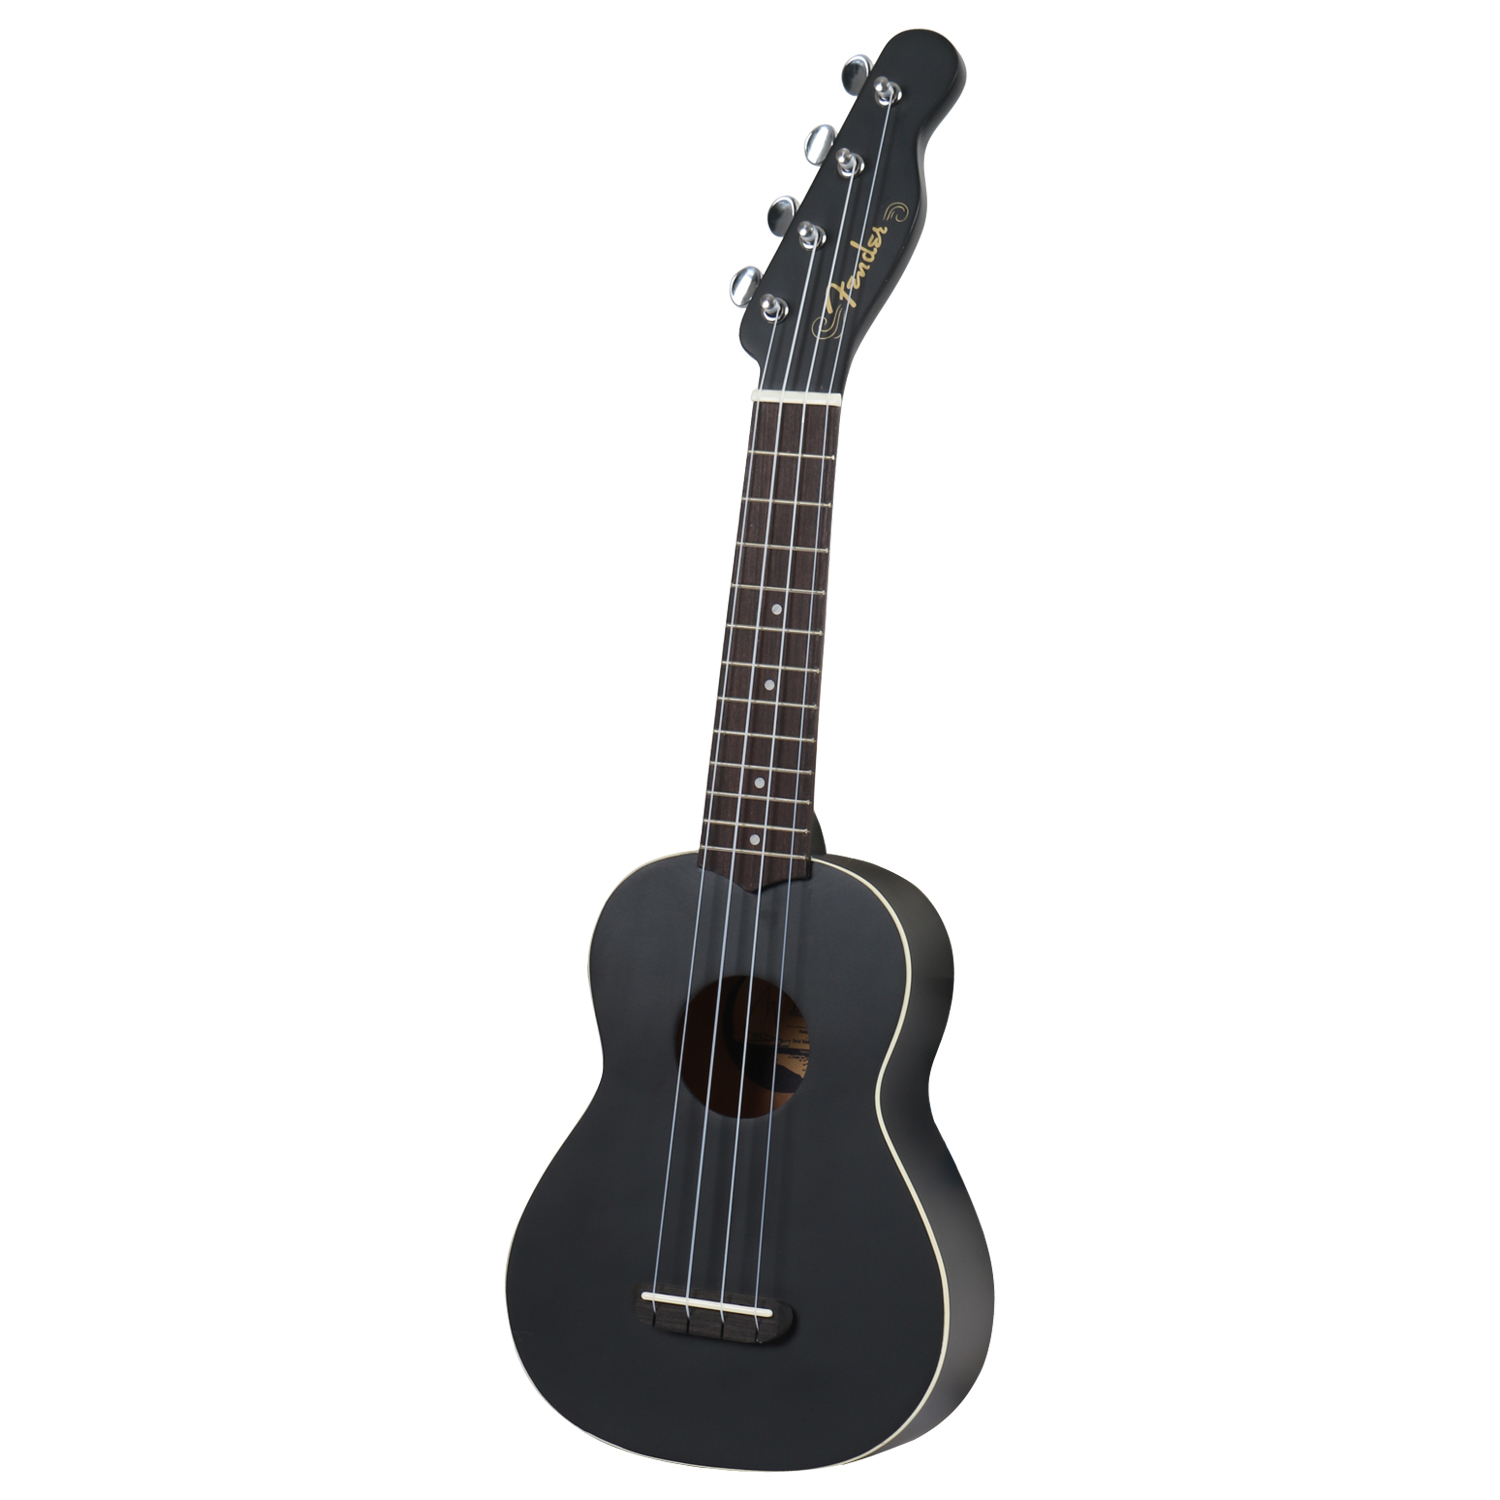 Fender California Coast Venice soprano ukulele, black